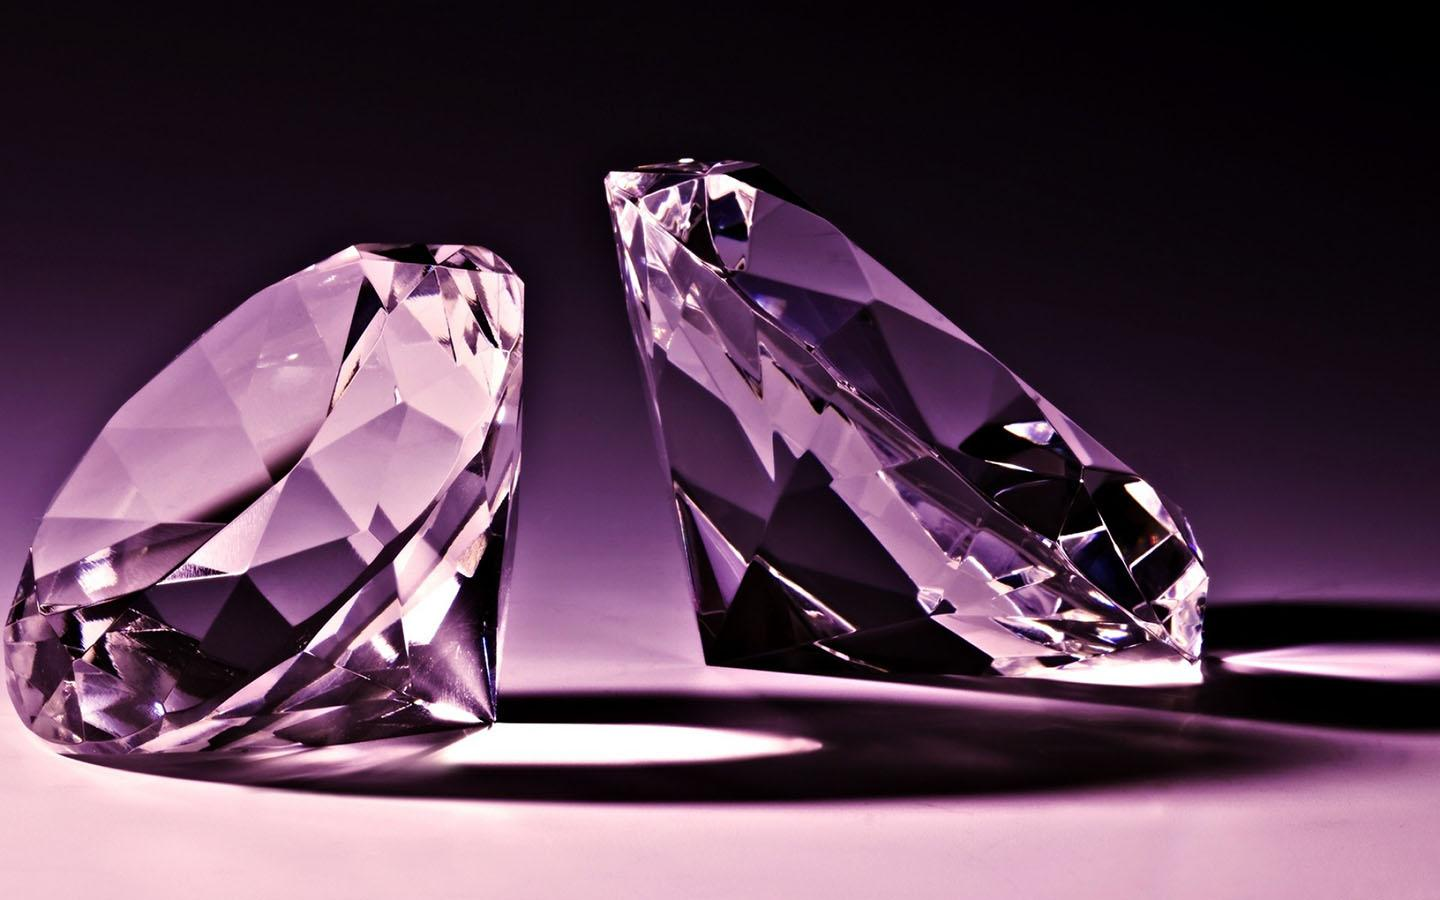 Diamond Wallpaper Android Apps on Google Play